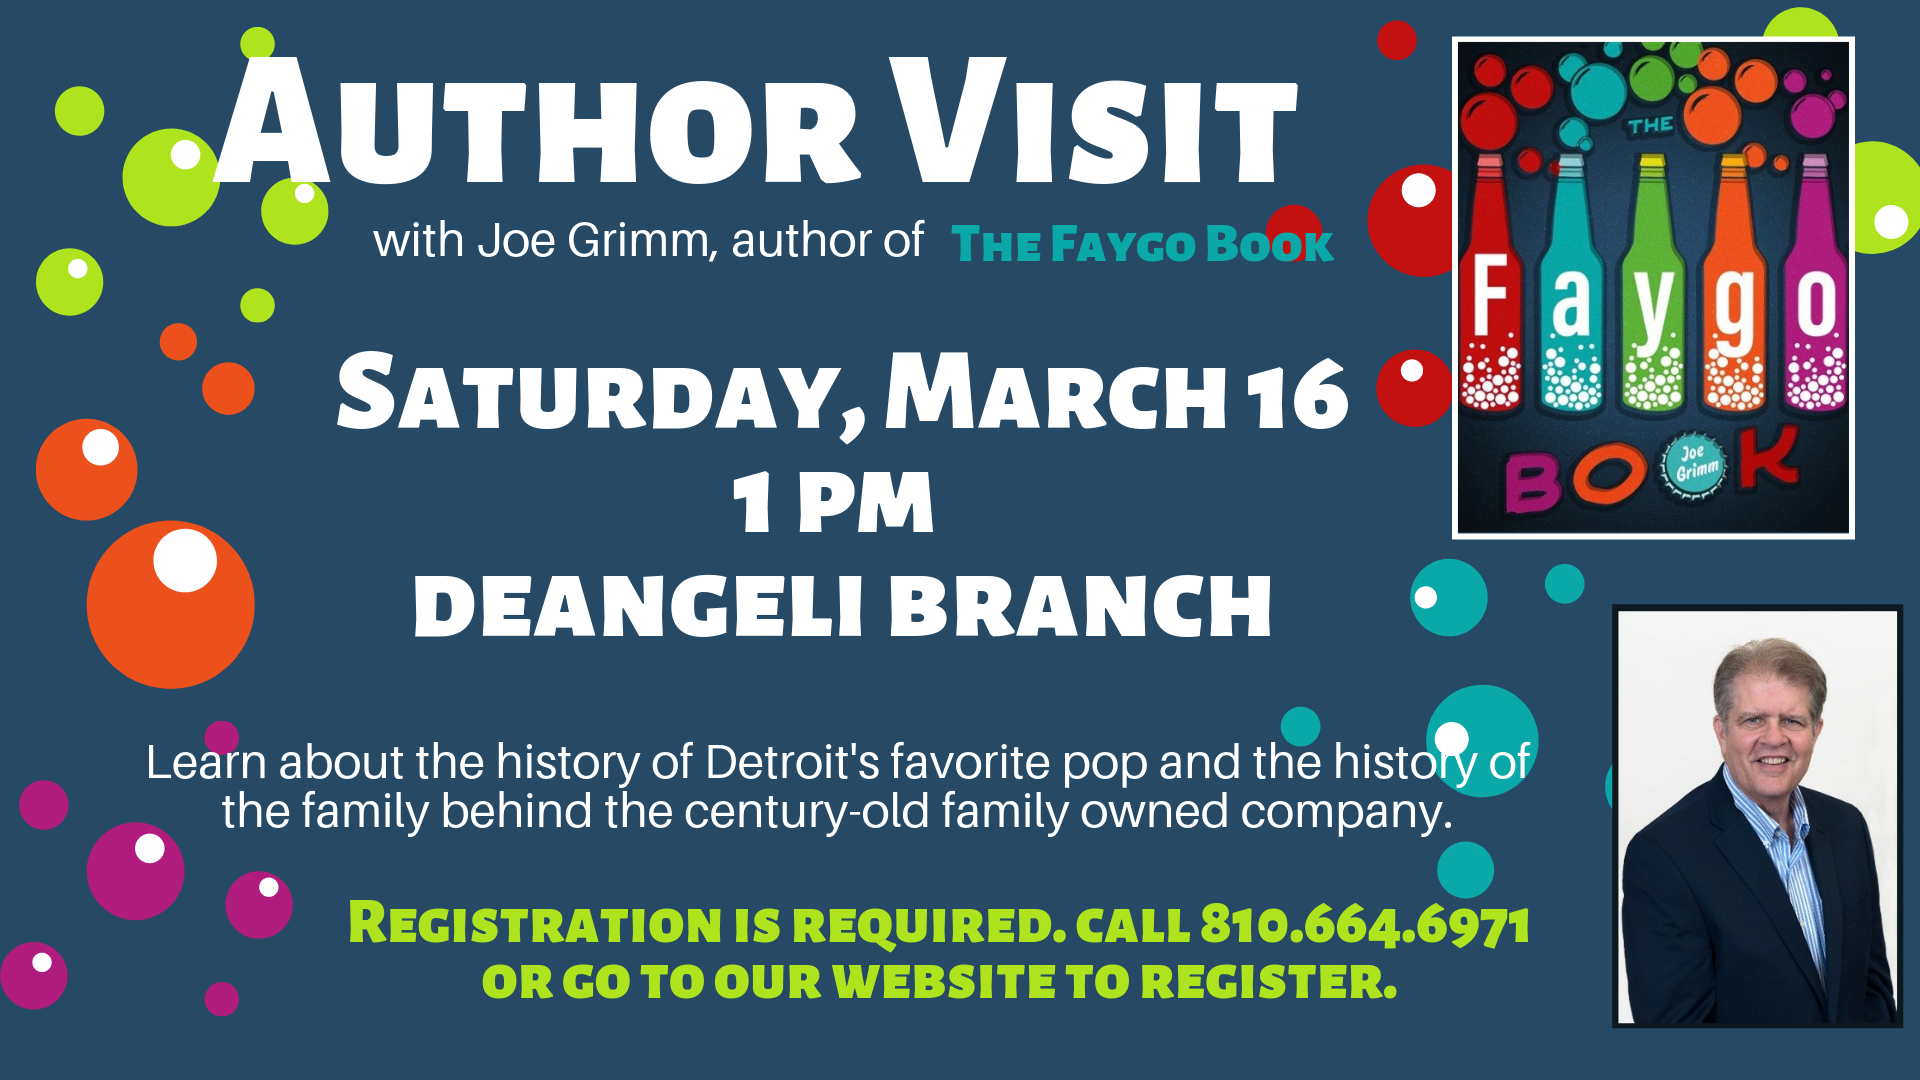 Author Visit with Joe Grimm, Author of The Faygo Book